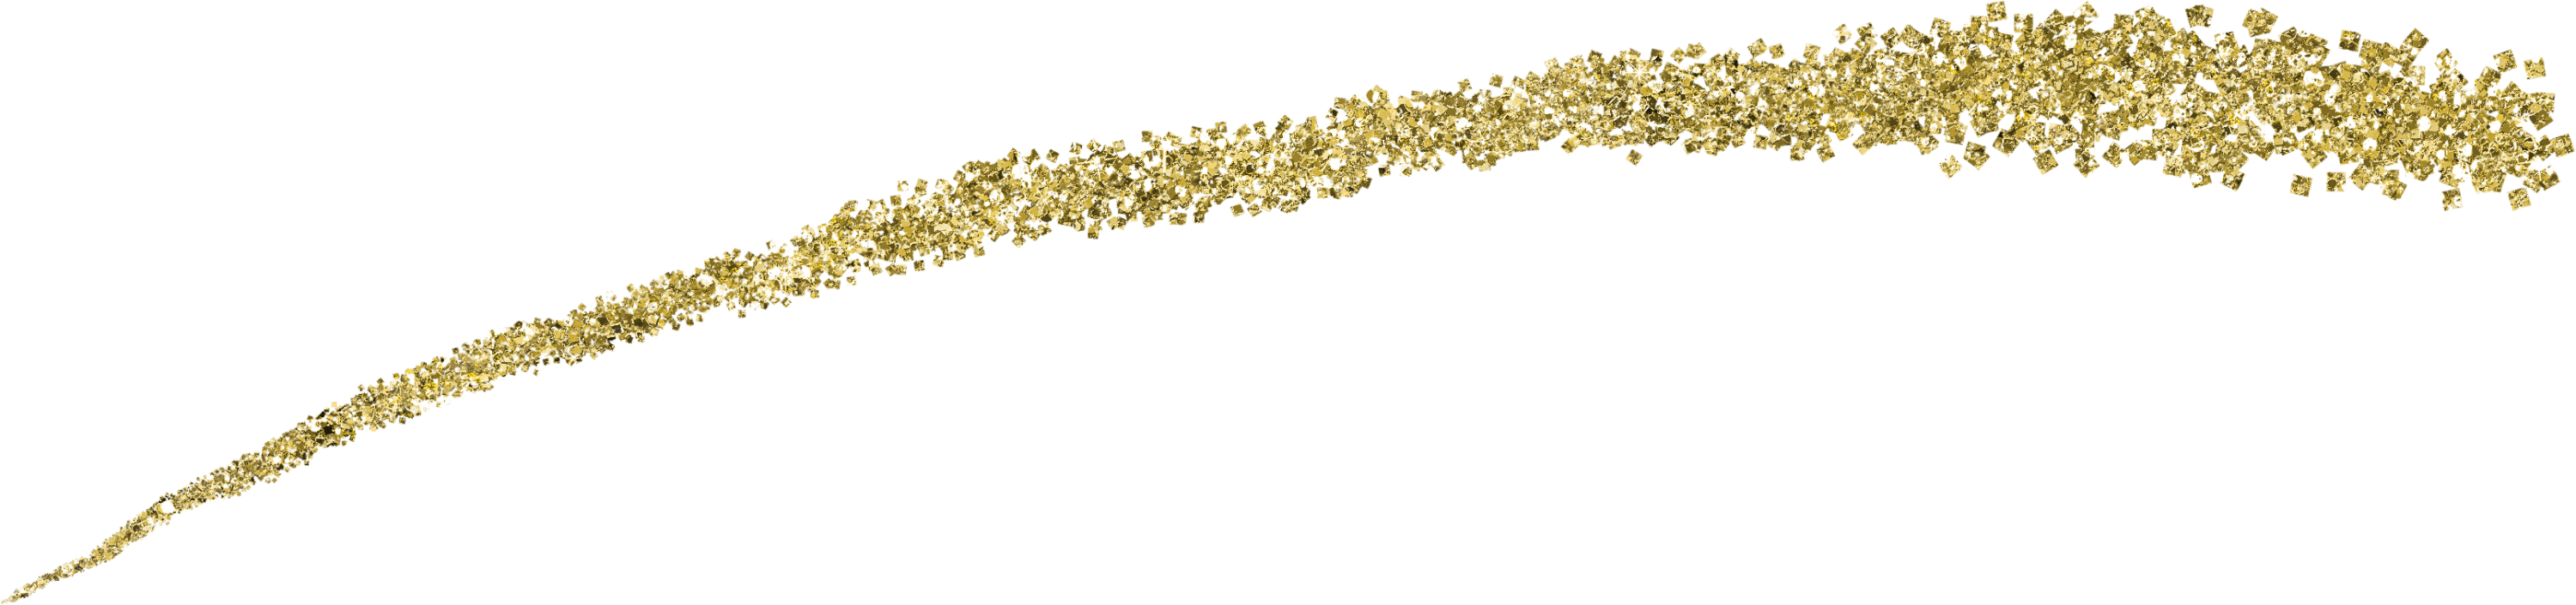 Gin & Côme - Page 3 262-2621335_line-gold-glitter-line-transparent